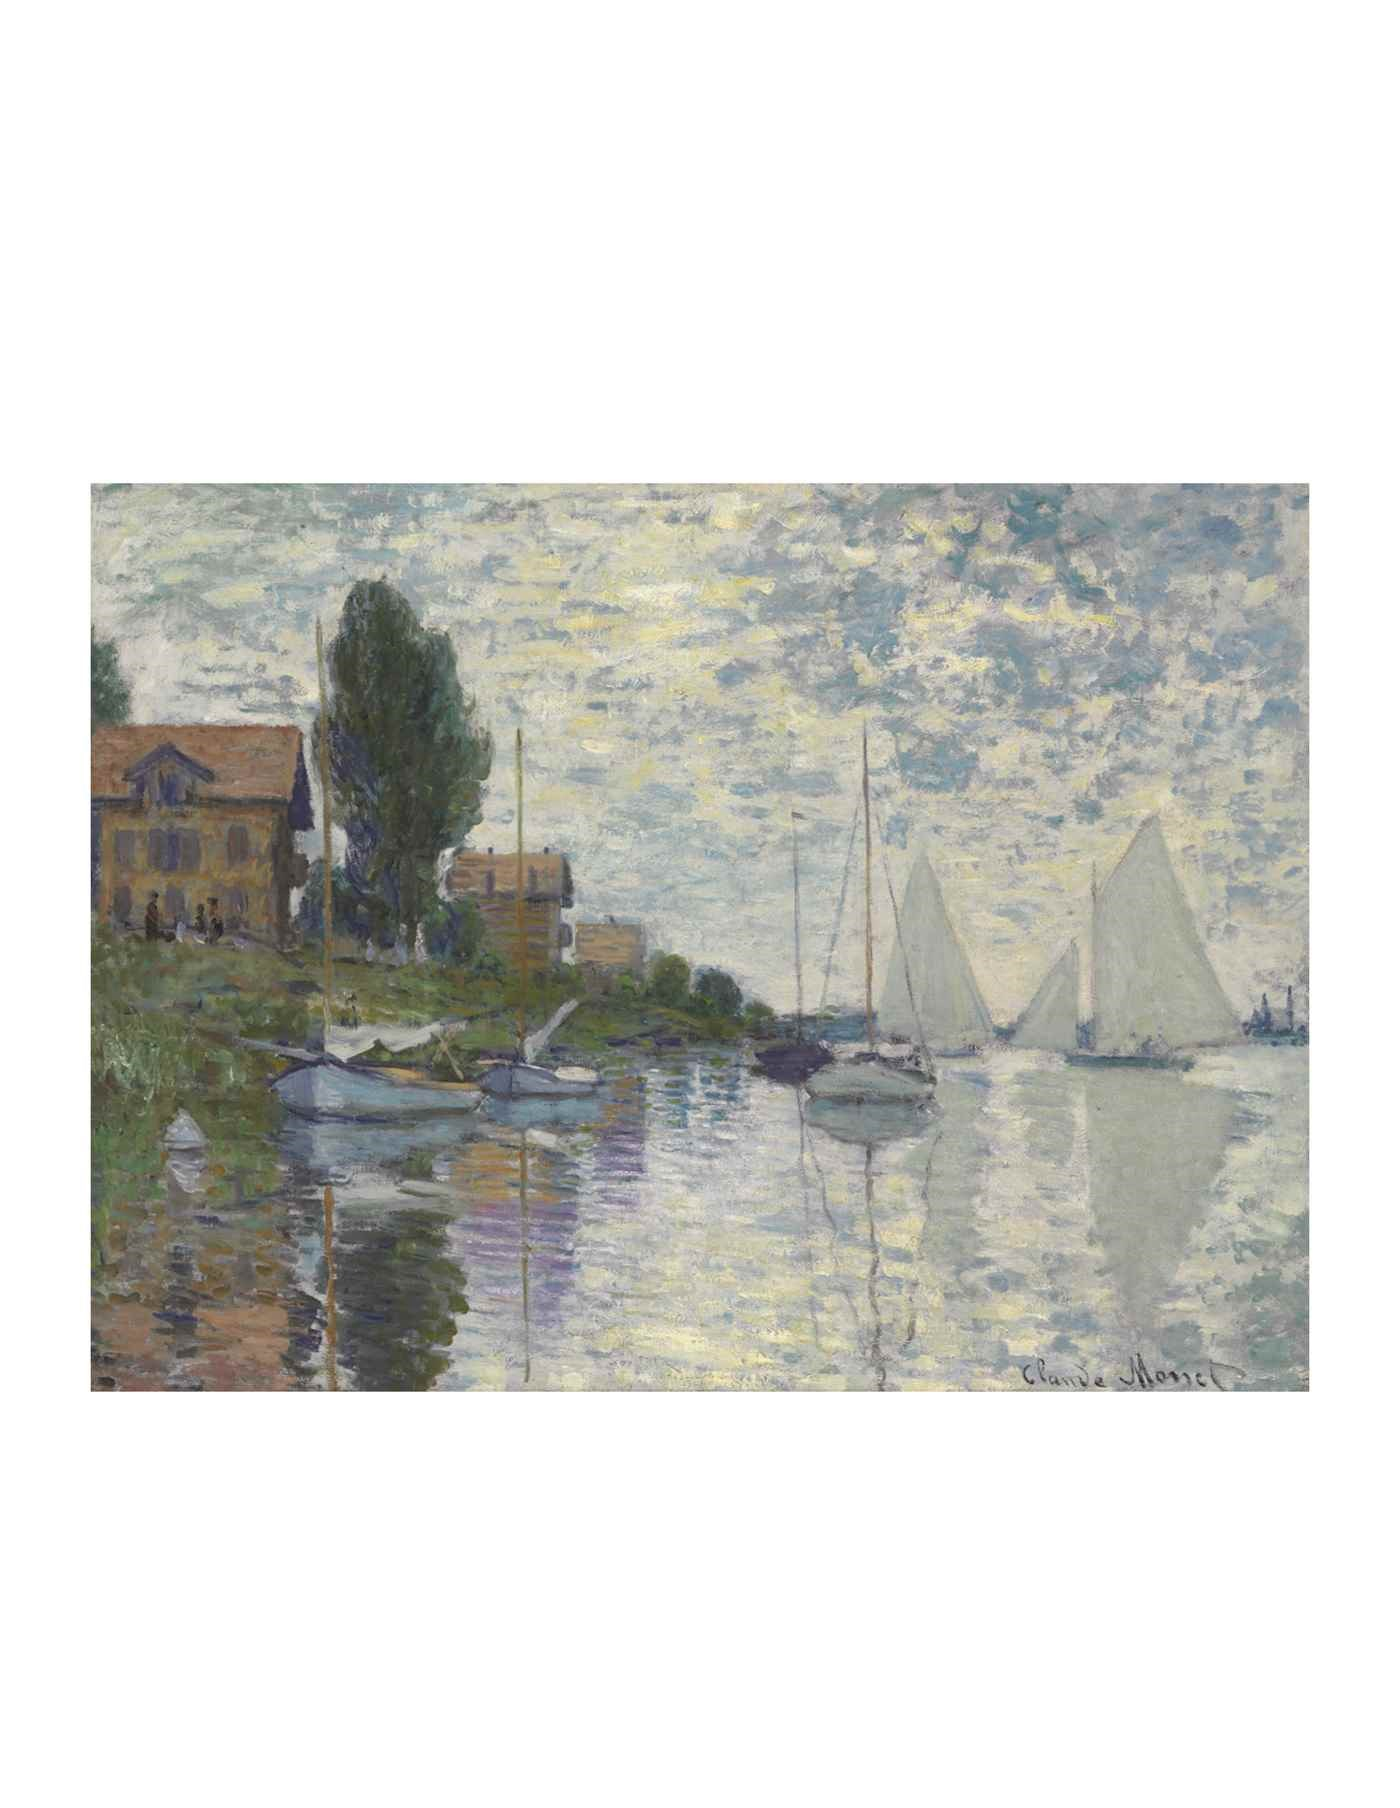 Impressionist & Modern Art Eve auction at Christies